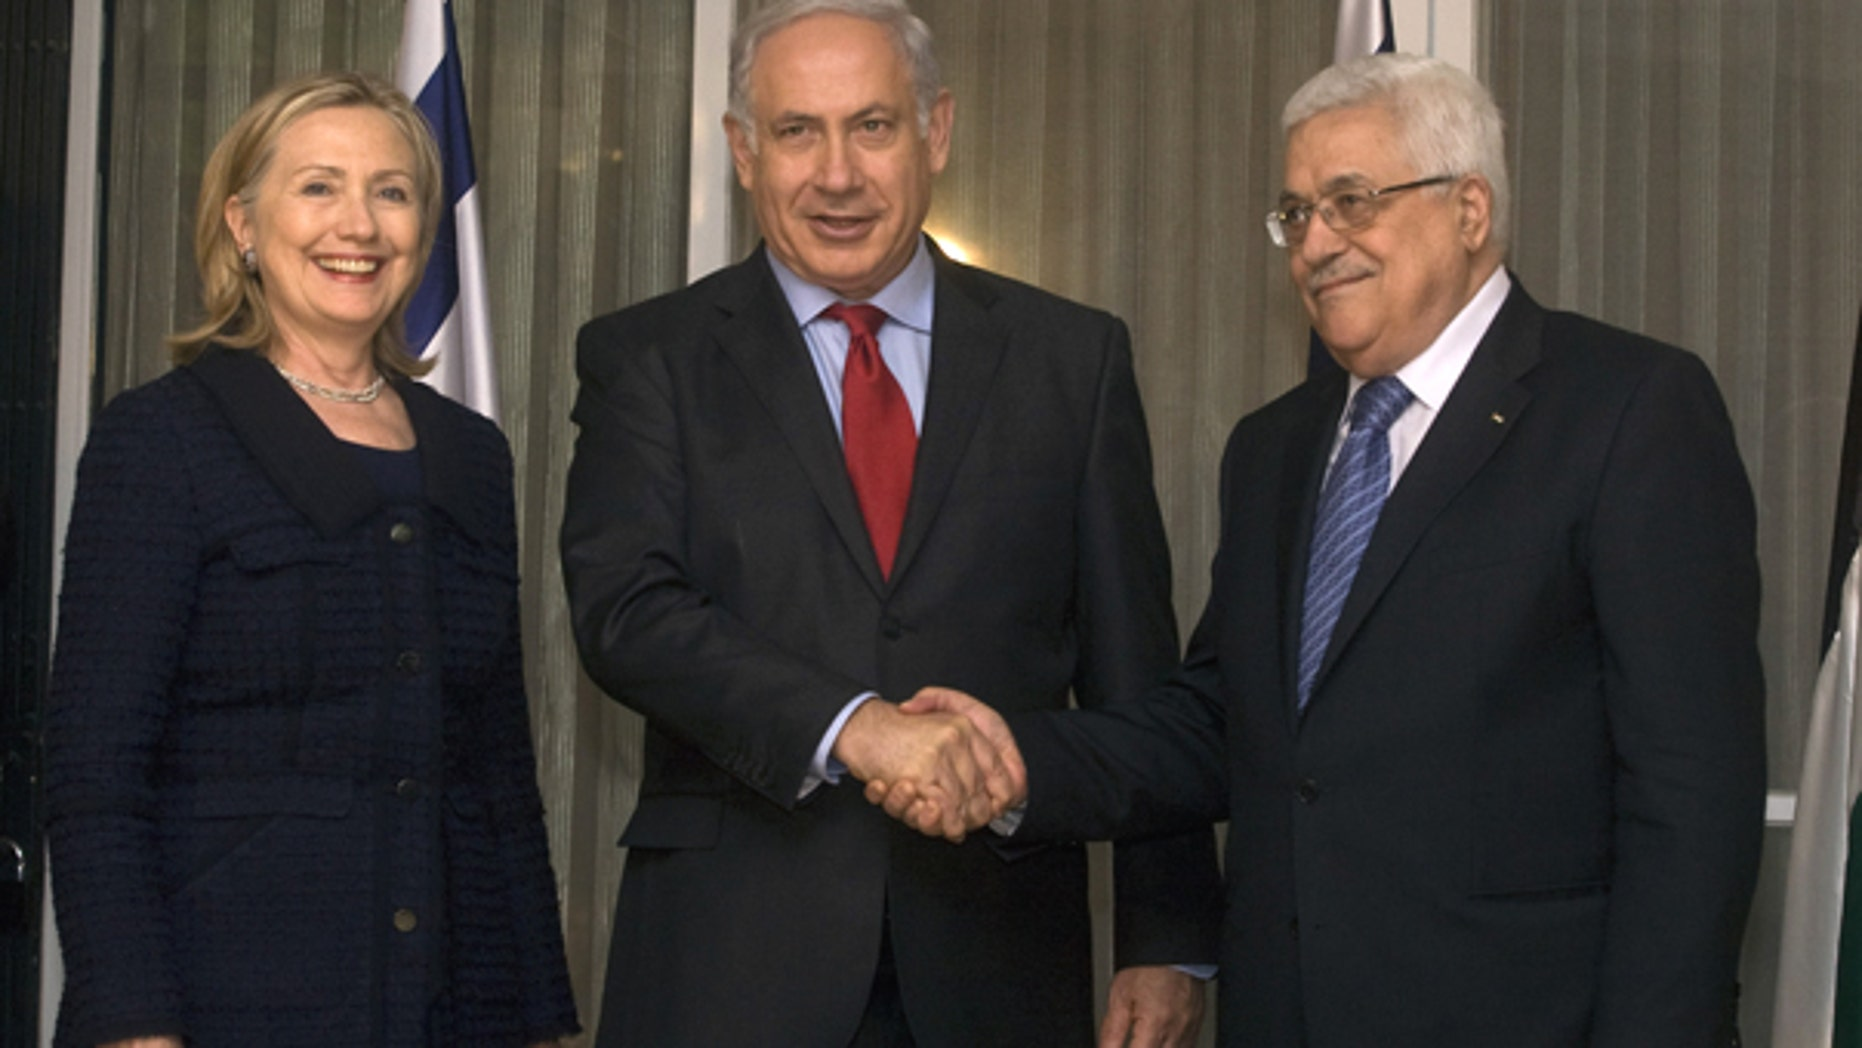 Sept. 15: Israeli Prime Minister Benjamin Netanyahu, center, shakes hands with Palestinian President Mahmoud Abbas, right, as Secretary of State Hillary Rodham Clinton smiles during a meeting at the Prime Ministers' residence in Jerusalem, Israel.